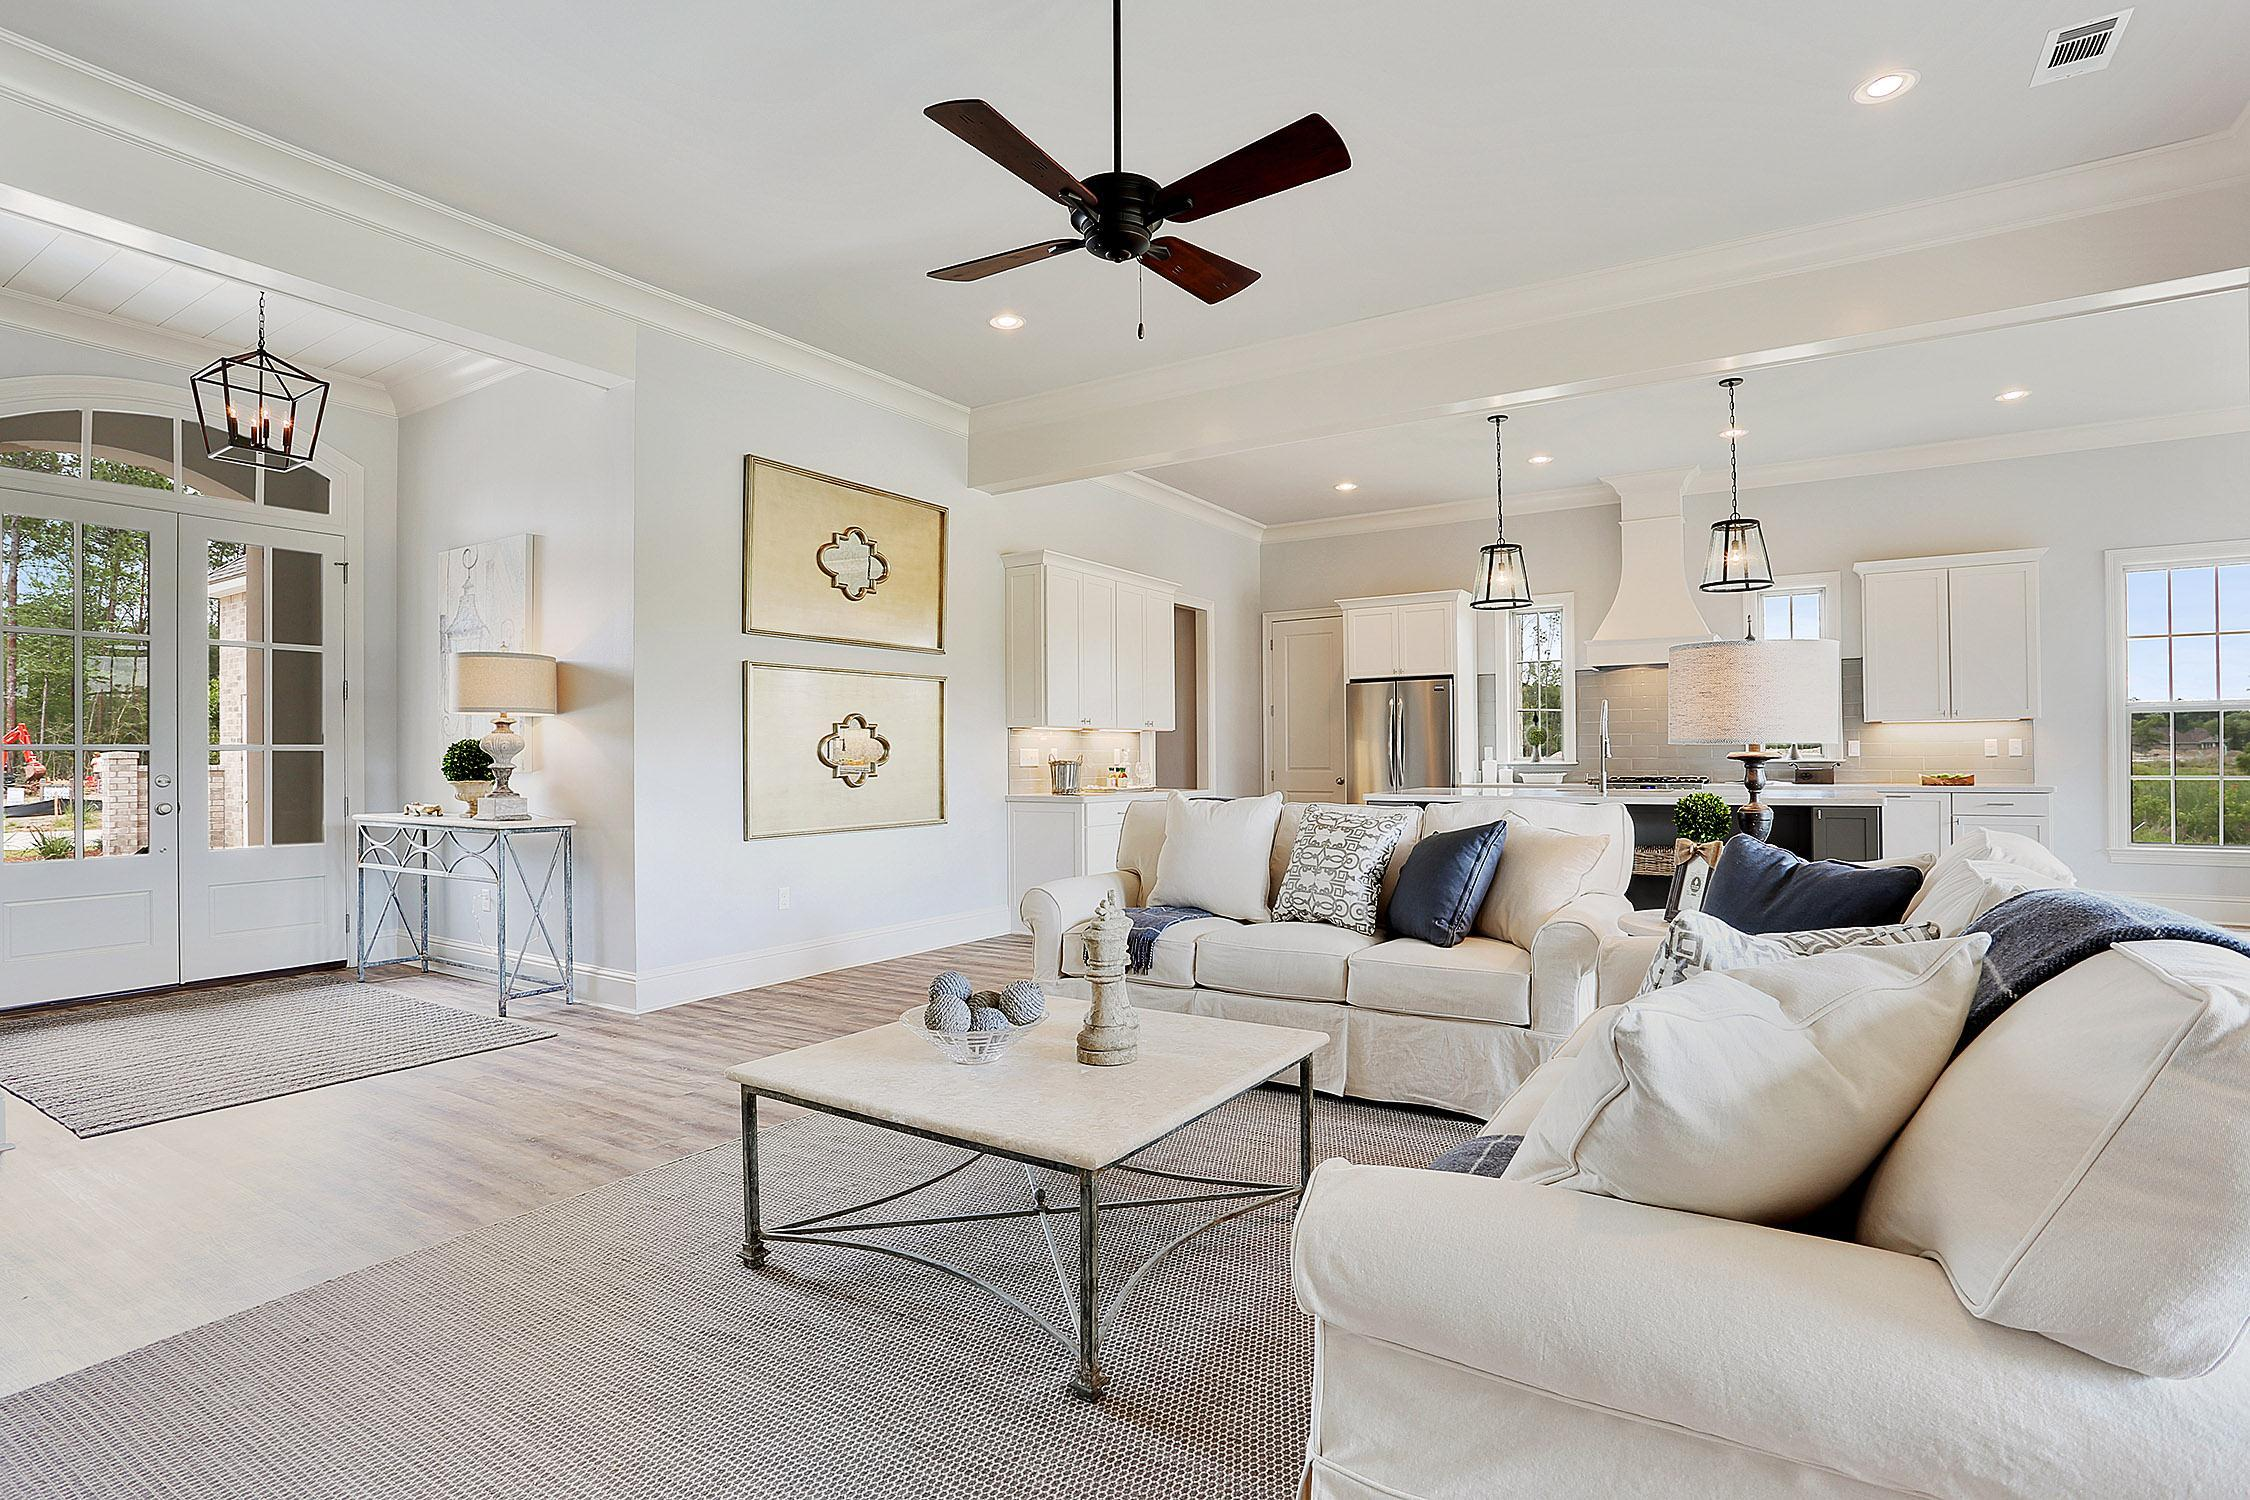 Living Area featured in the Julianne By Highland Homes in New Orleans, LA